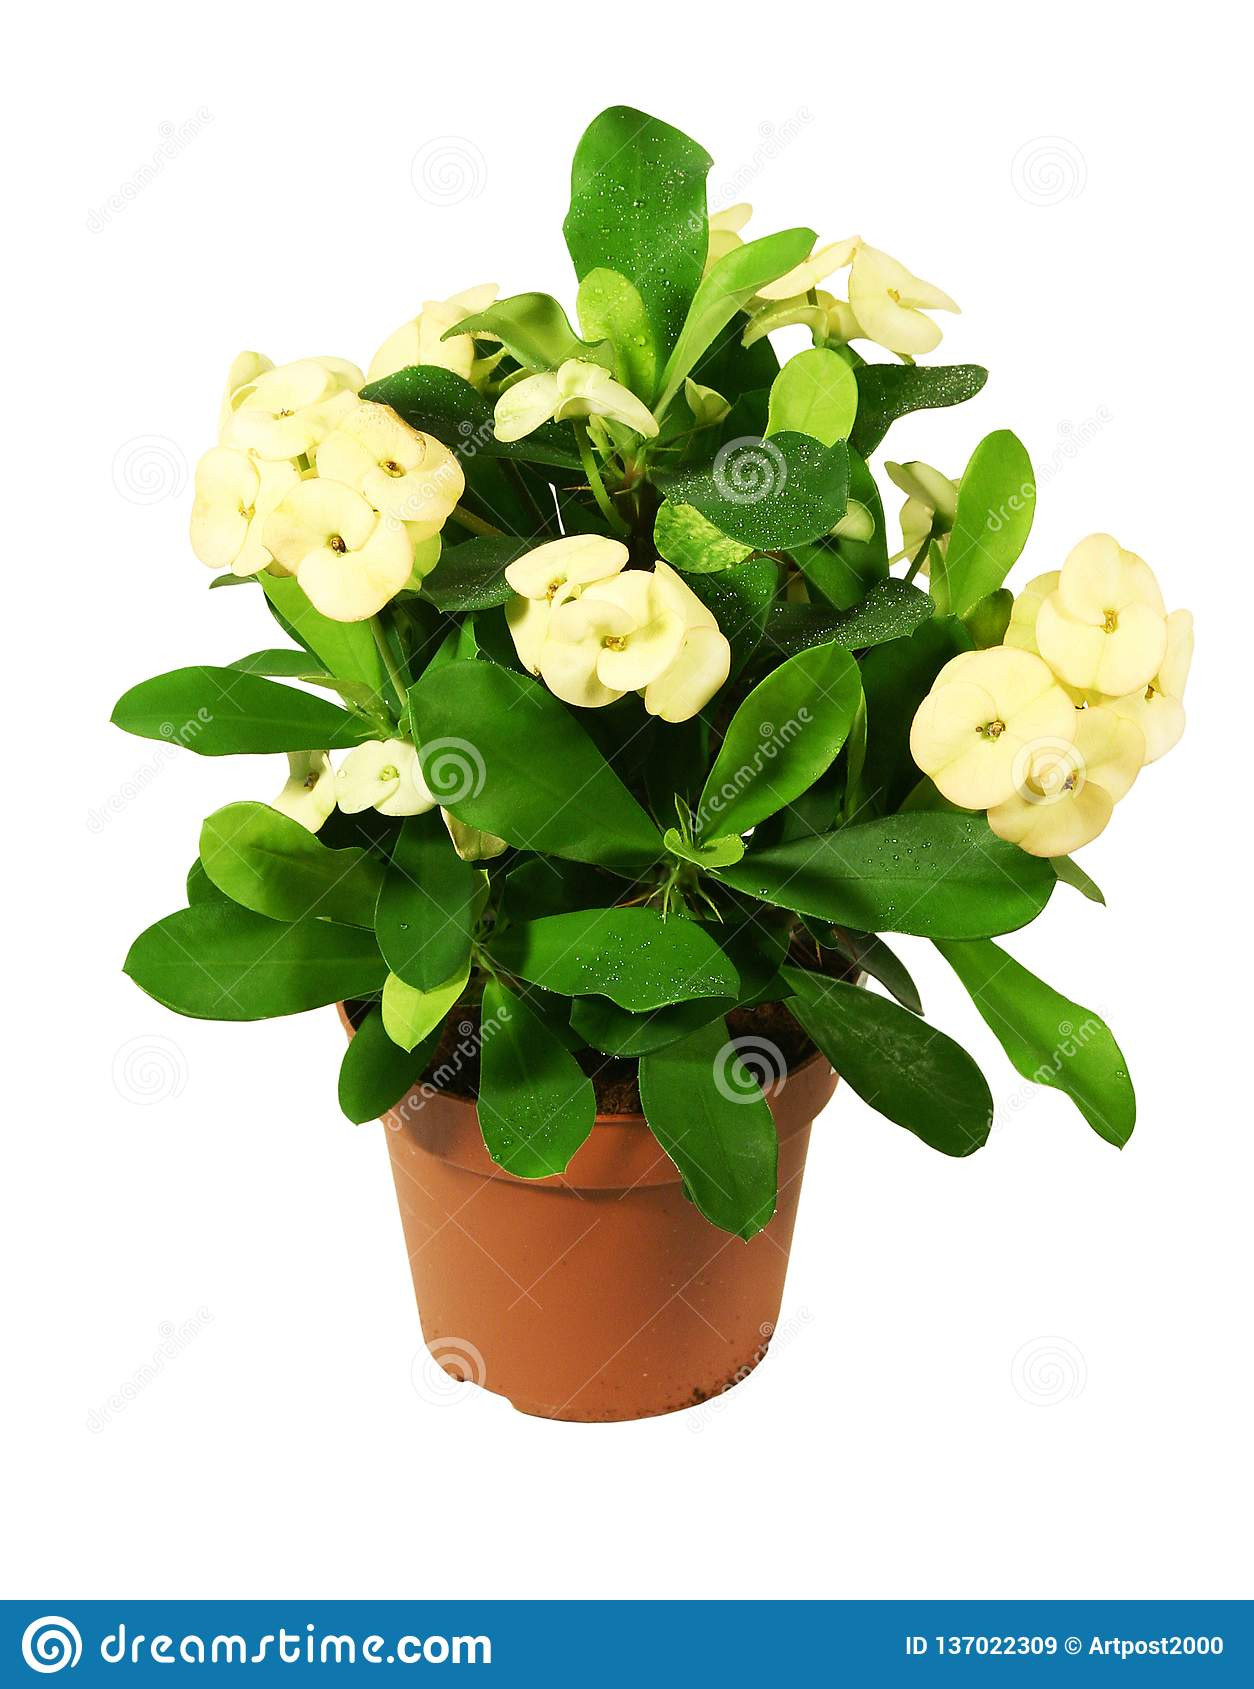 Blossoming plant in flowerpot on white background.